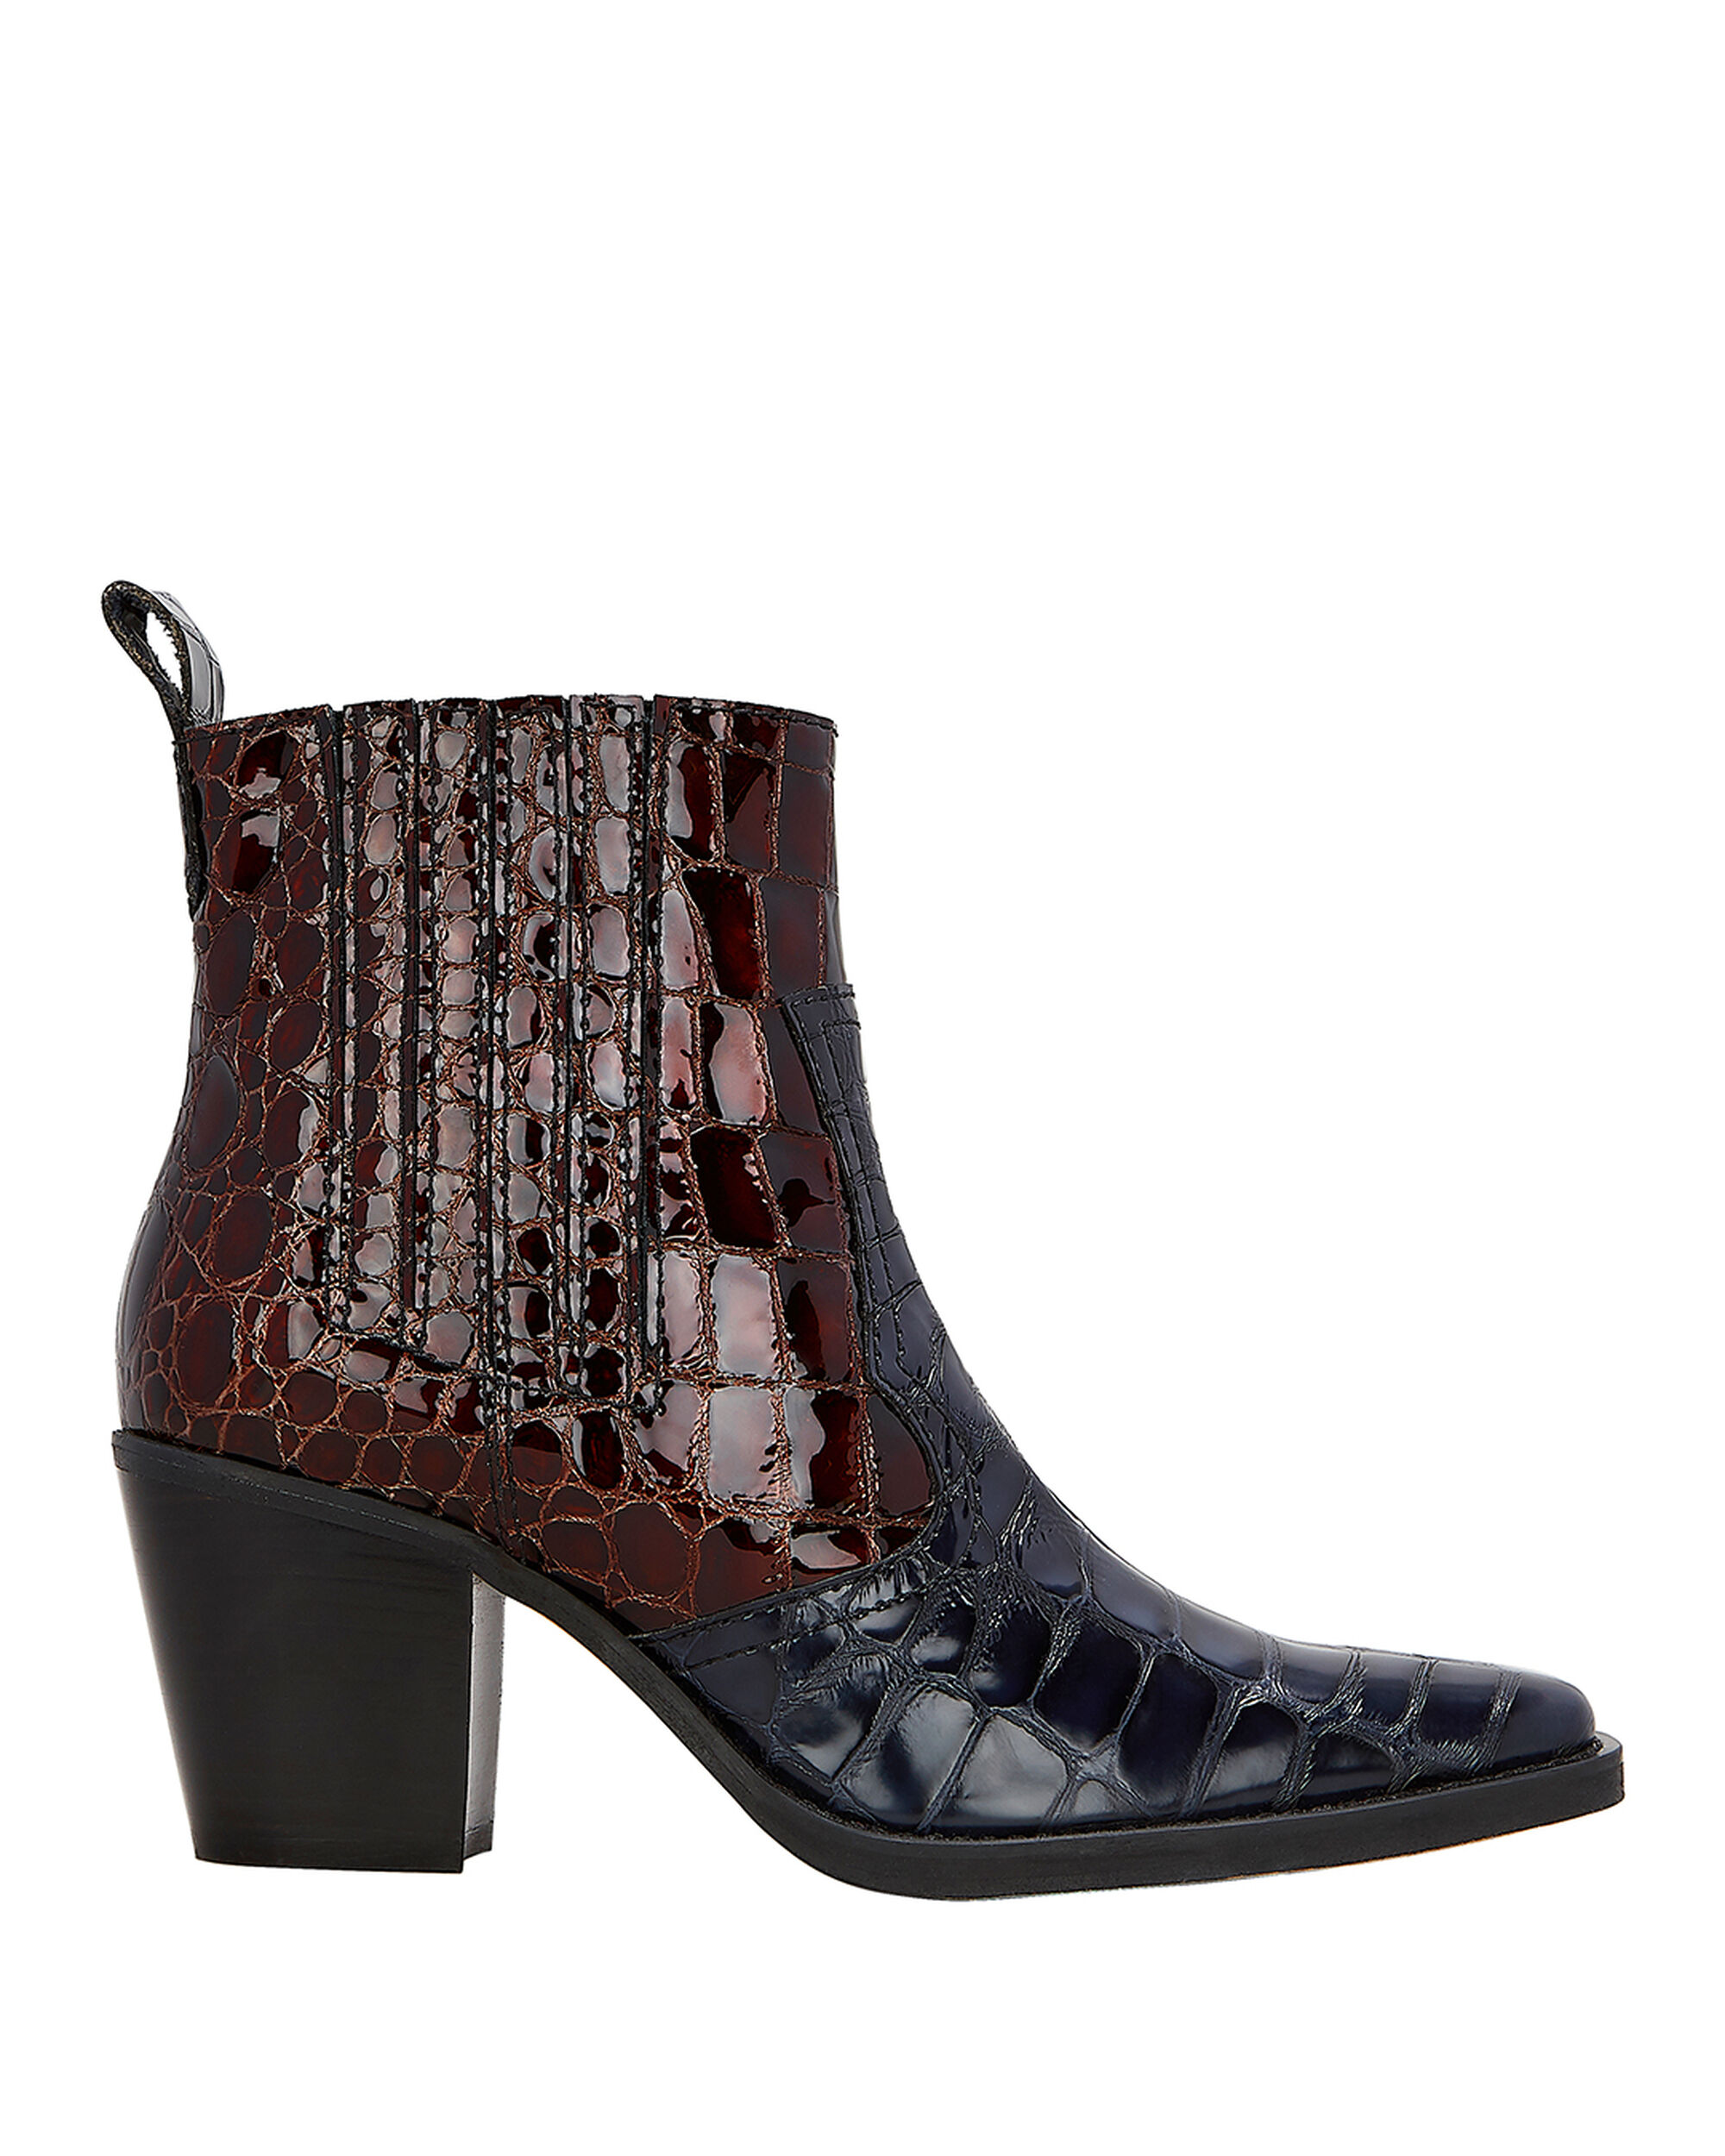 Callie Two-Tone Boots, BROWN/NAVY, hi-res